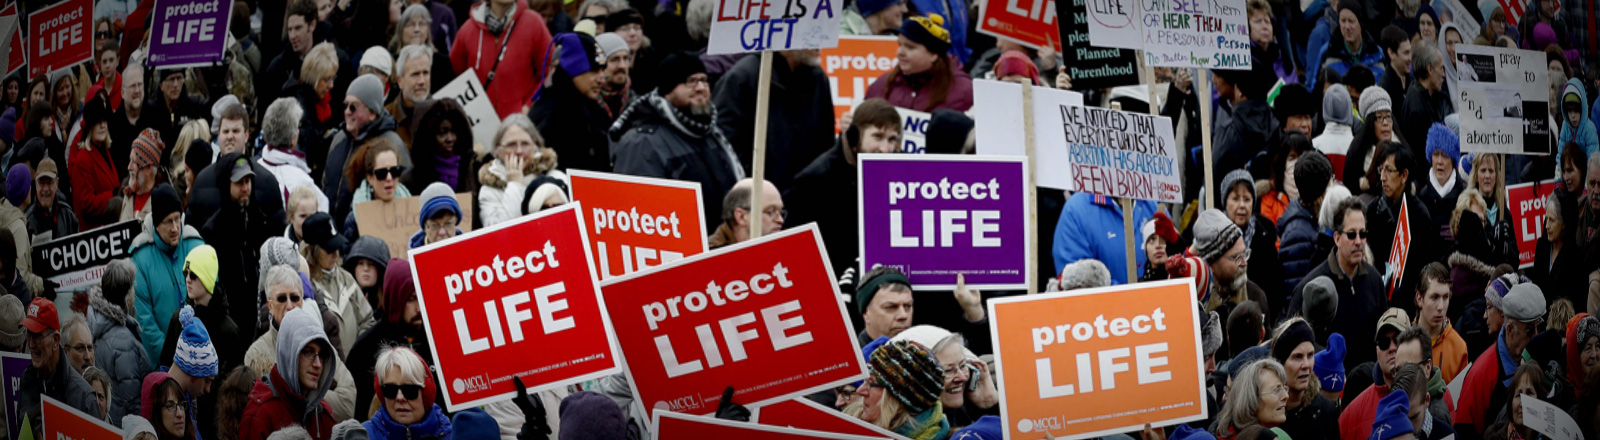 March for Life 22.01.2017 in St. Paul